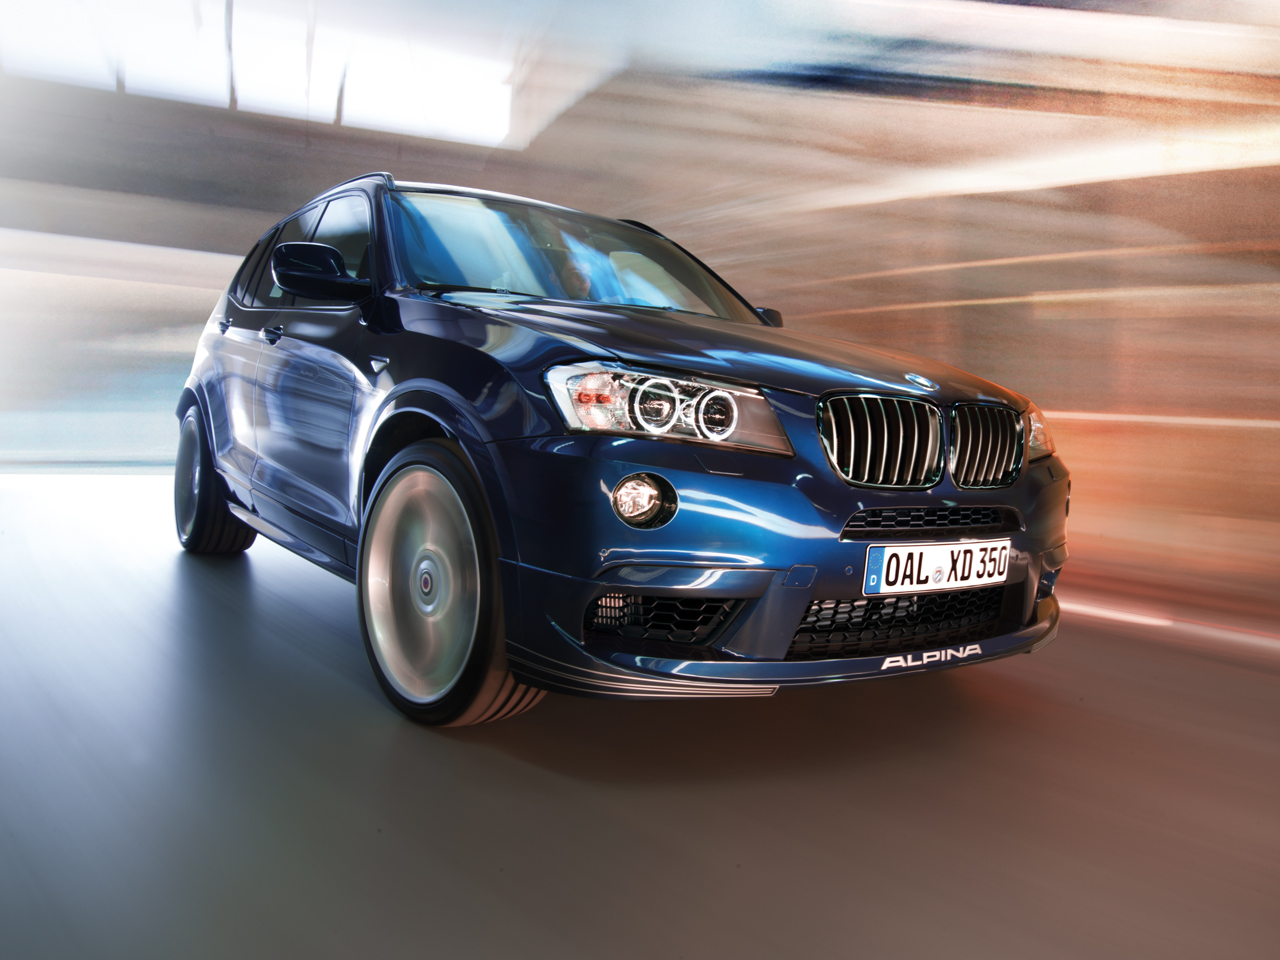 2014 Bmw Alpina Xd3 Biturbo Review Top Speed